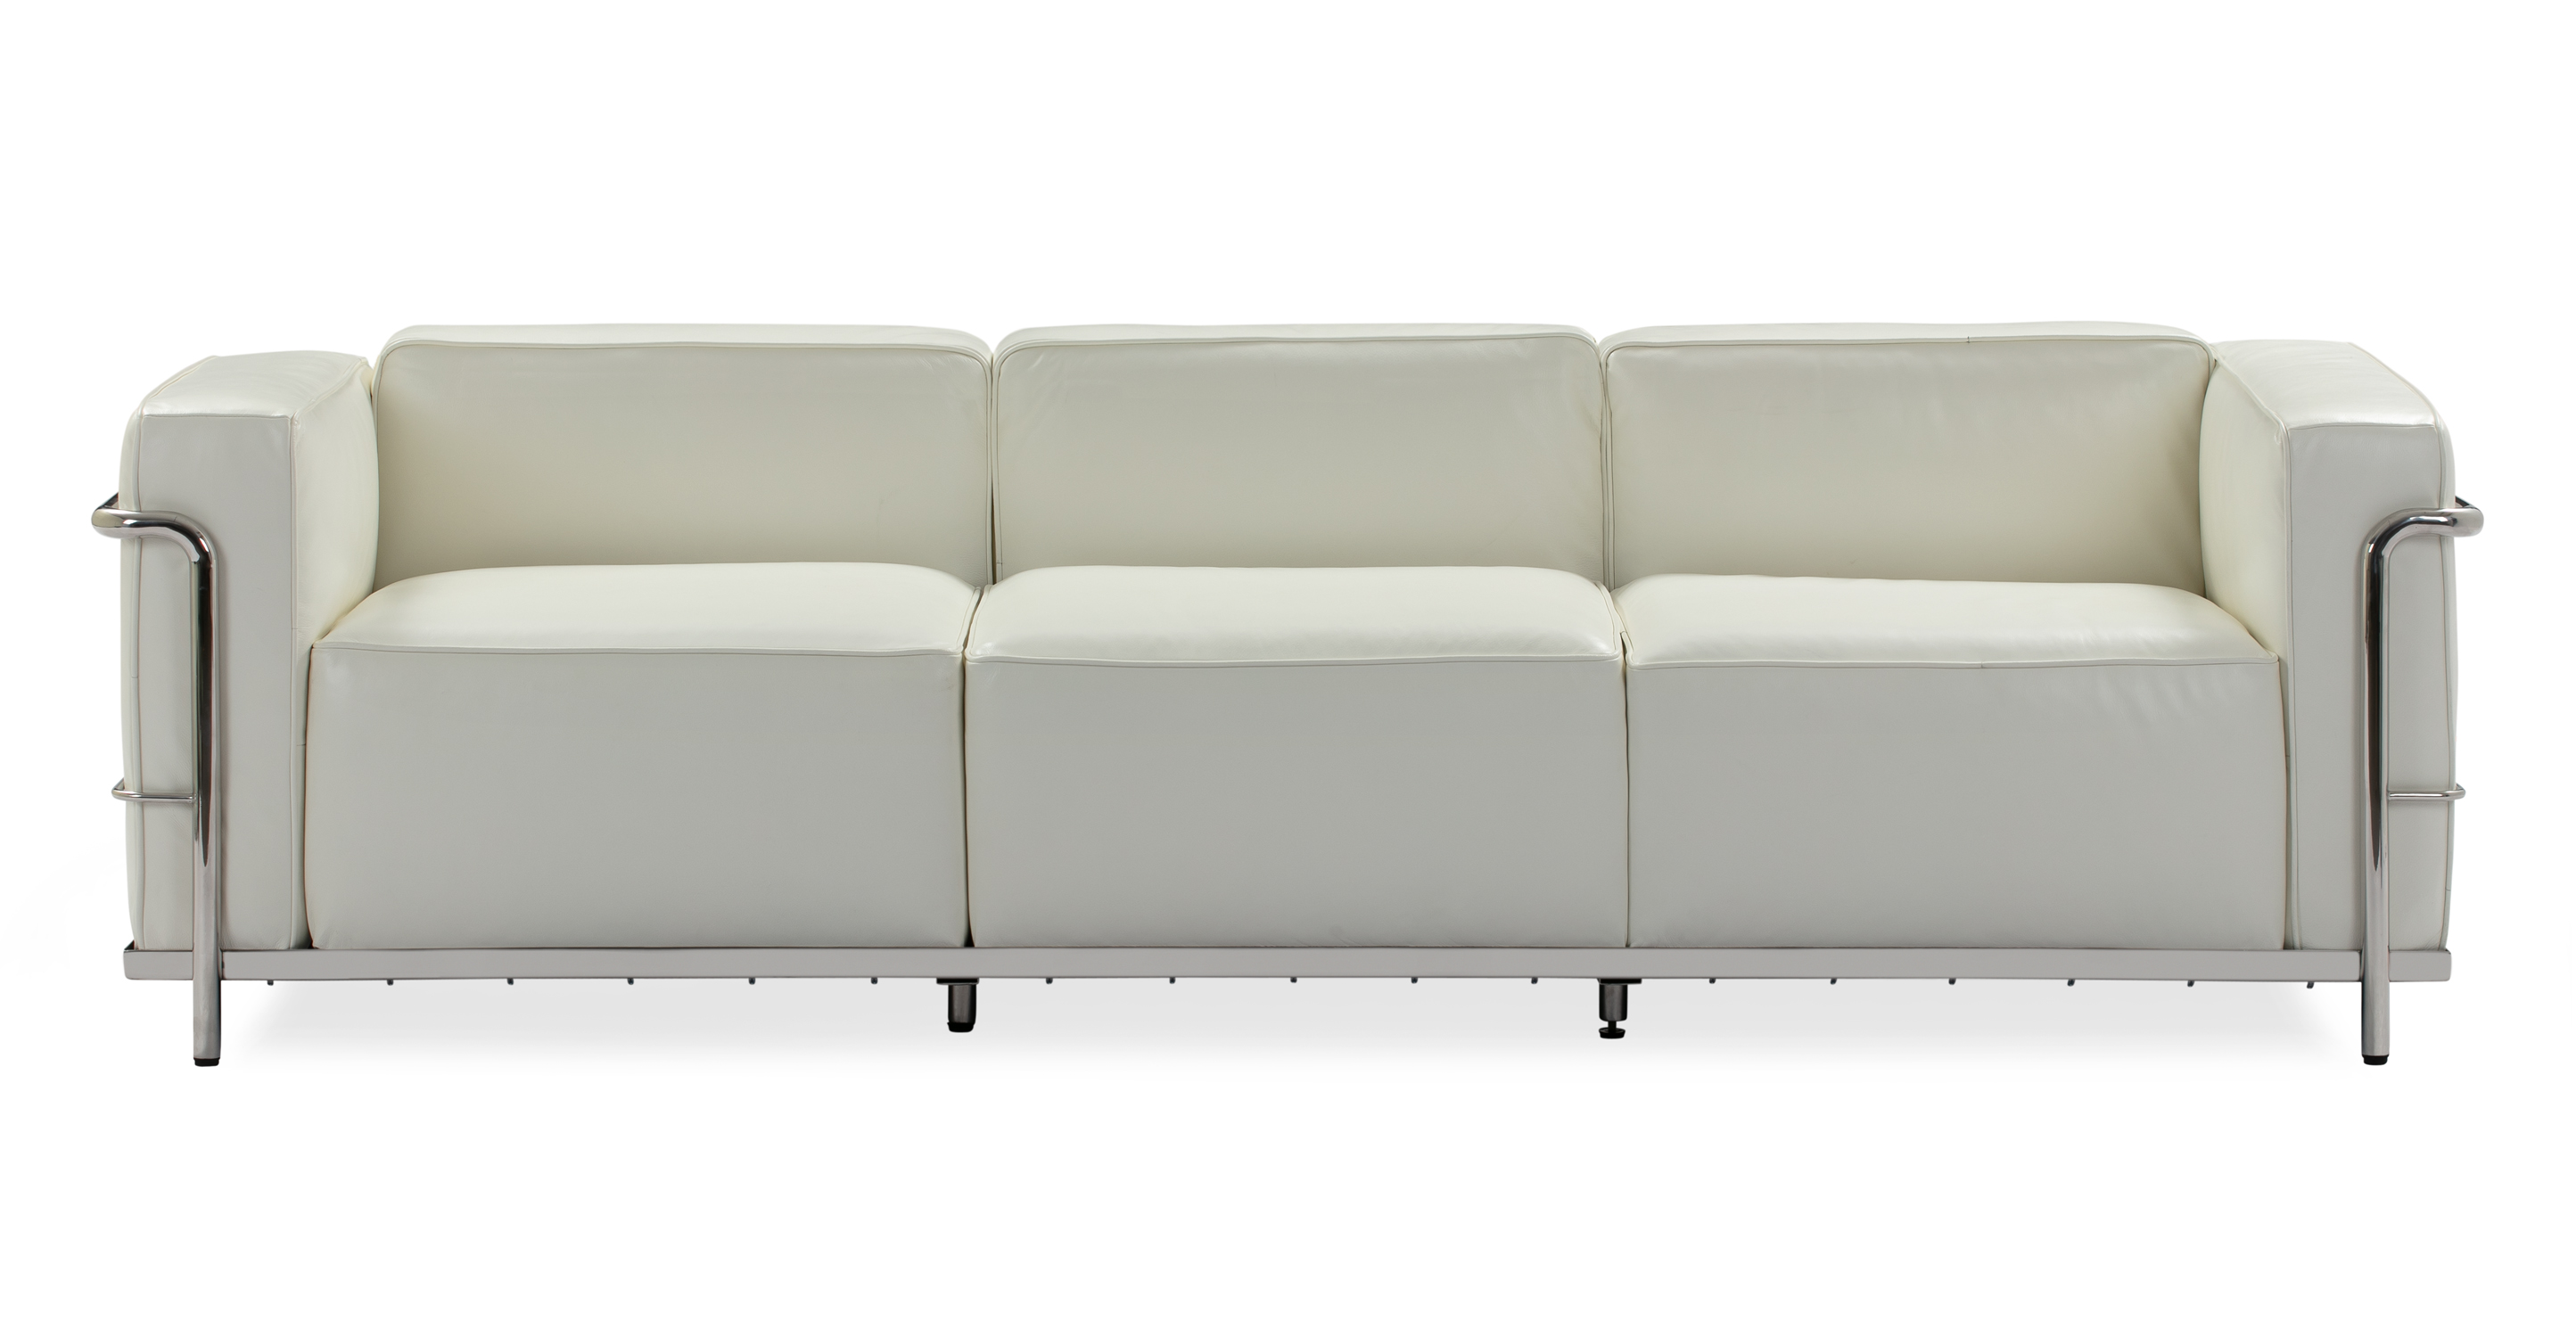 "Roche 89"" Leather Sofa, White"